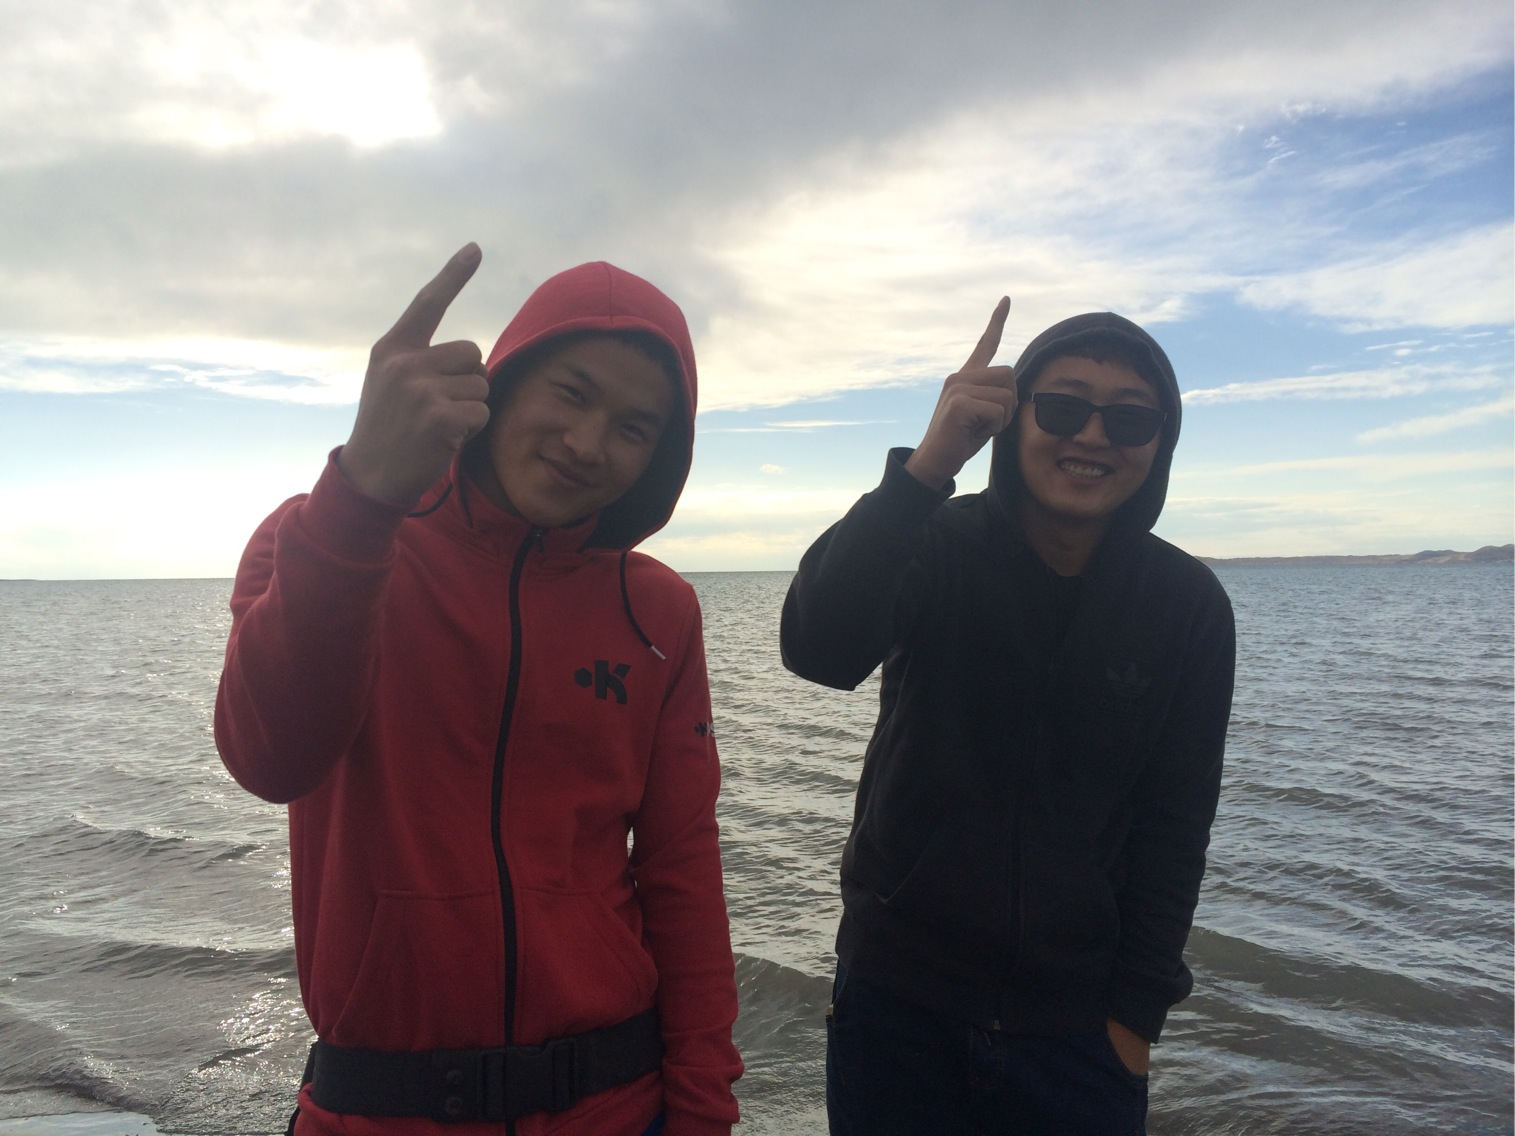 Dachao & Yihzheng, Qinghai Lake, China